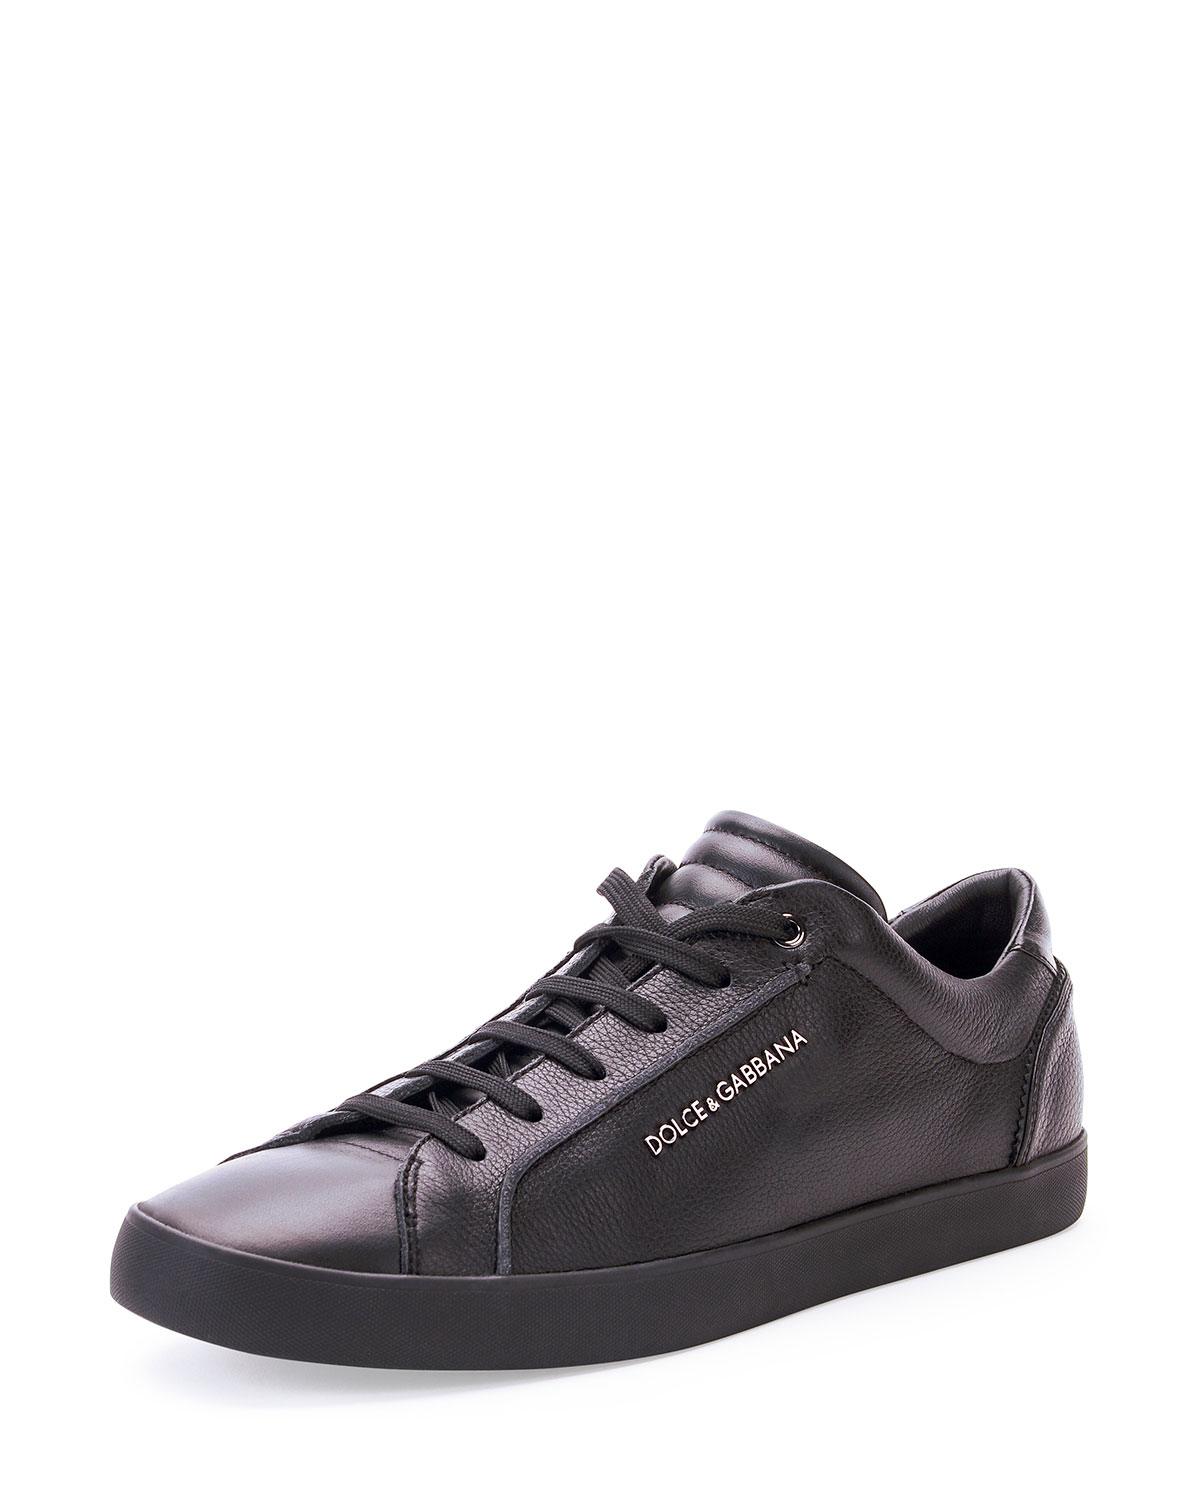 Dolce & Gabbana Canvas Low-Top Sneakers buy cheap collections outlet 100% original free shipping supply free shipping manchester great sale MLoLq